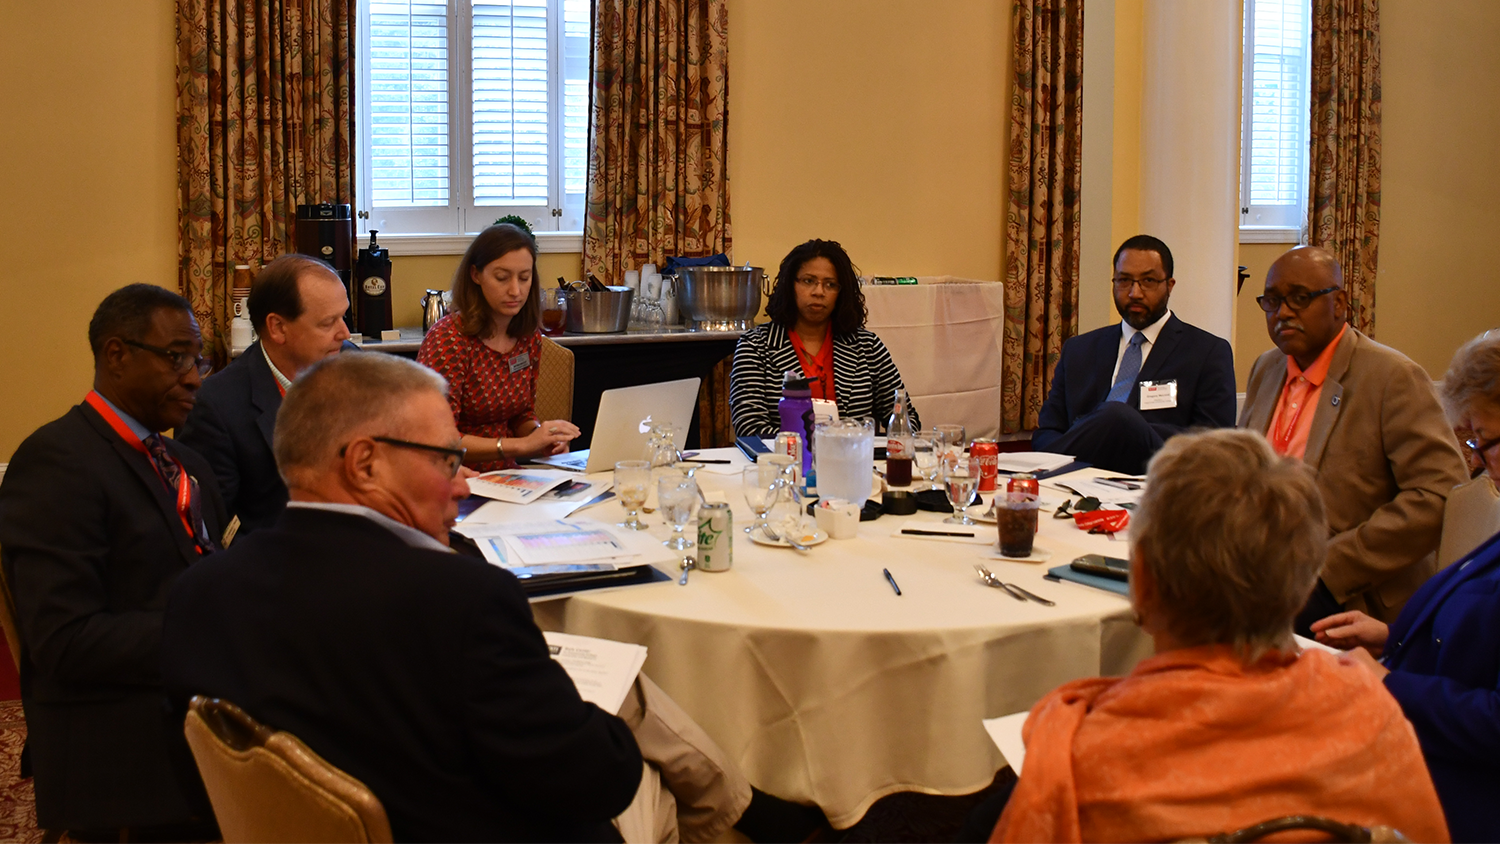 A group of community college presidents discuss data at the Belk Center Presidents' Academy Symposium on Sept. 9, 2019